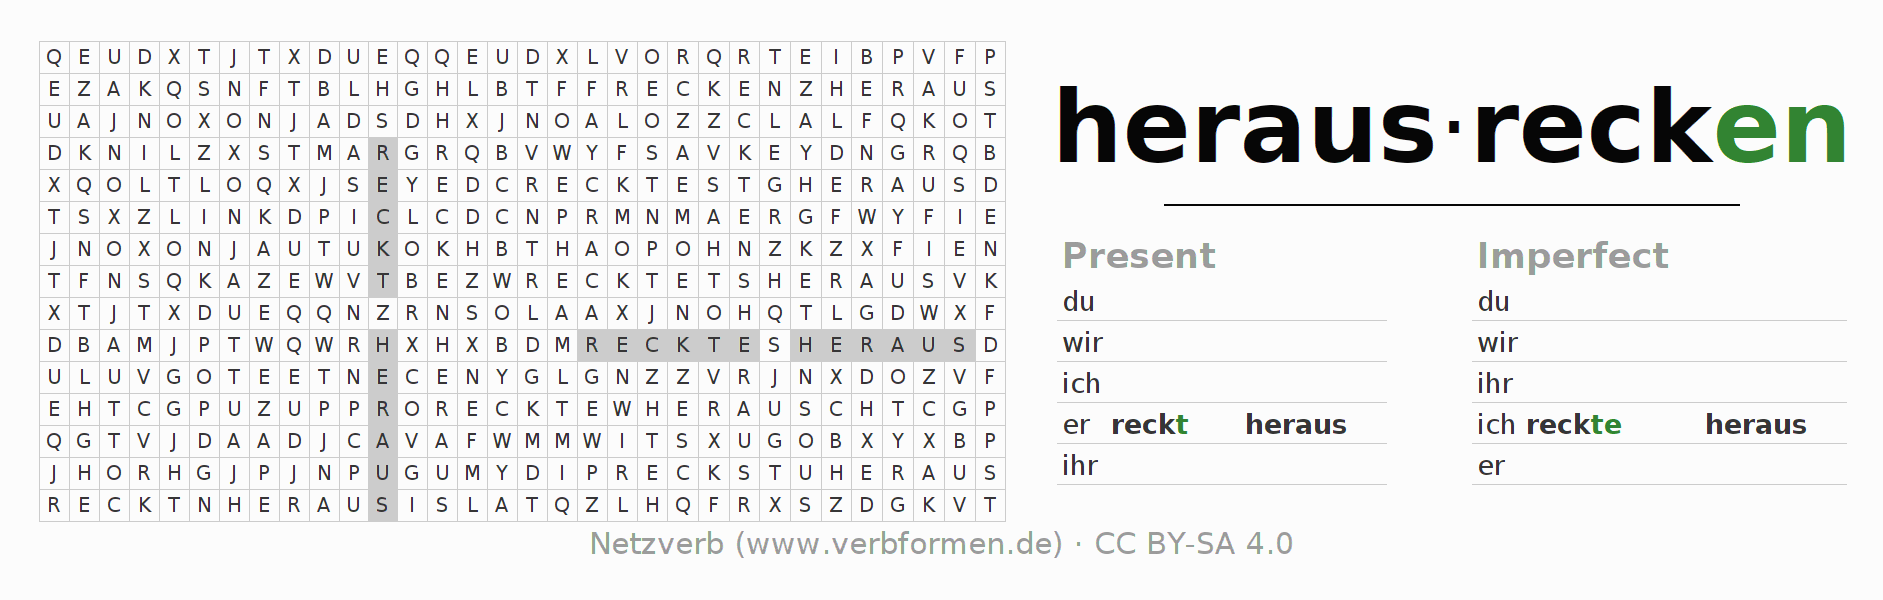 Word search puzzle for the conjugation of the verb herausrecken